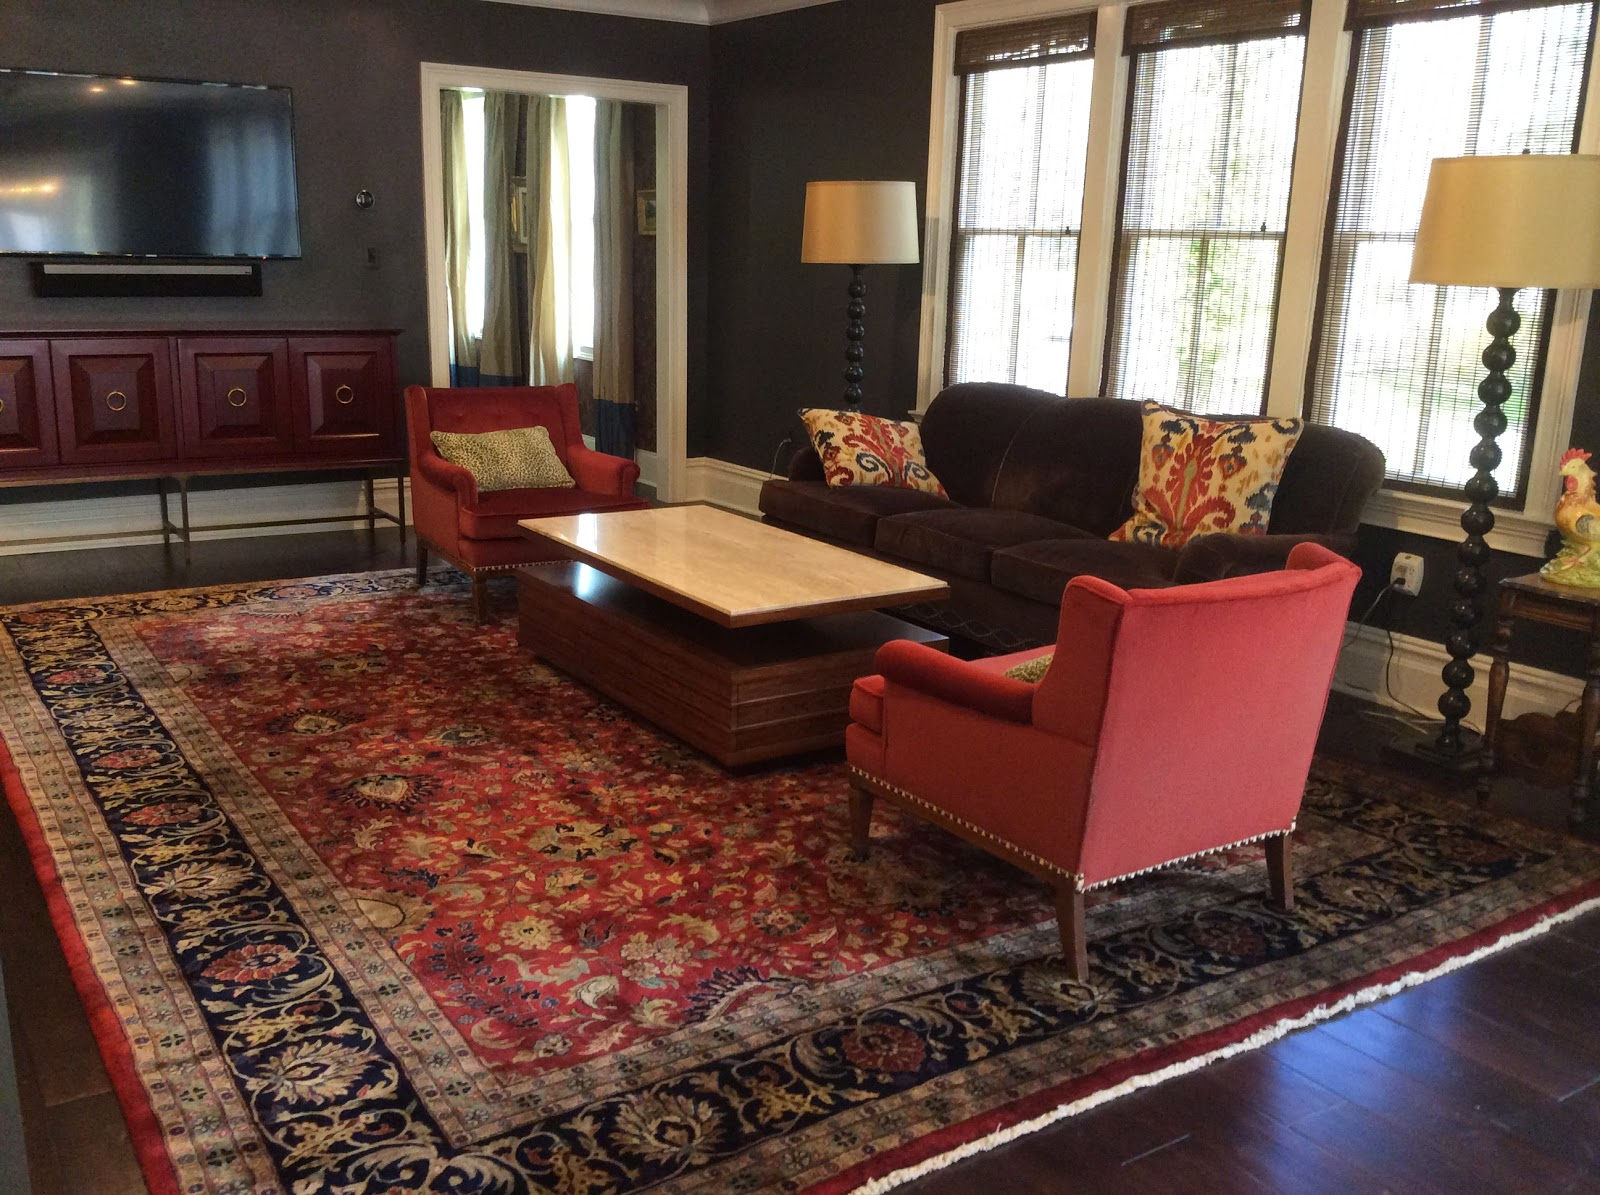 Old Furnishings Including A New Family Room Rug To Fill The Expanded Living Areas Marriage Of Modern With Traditional Yields An Updated Elegant